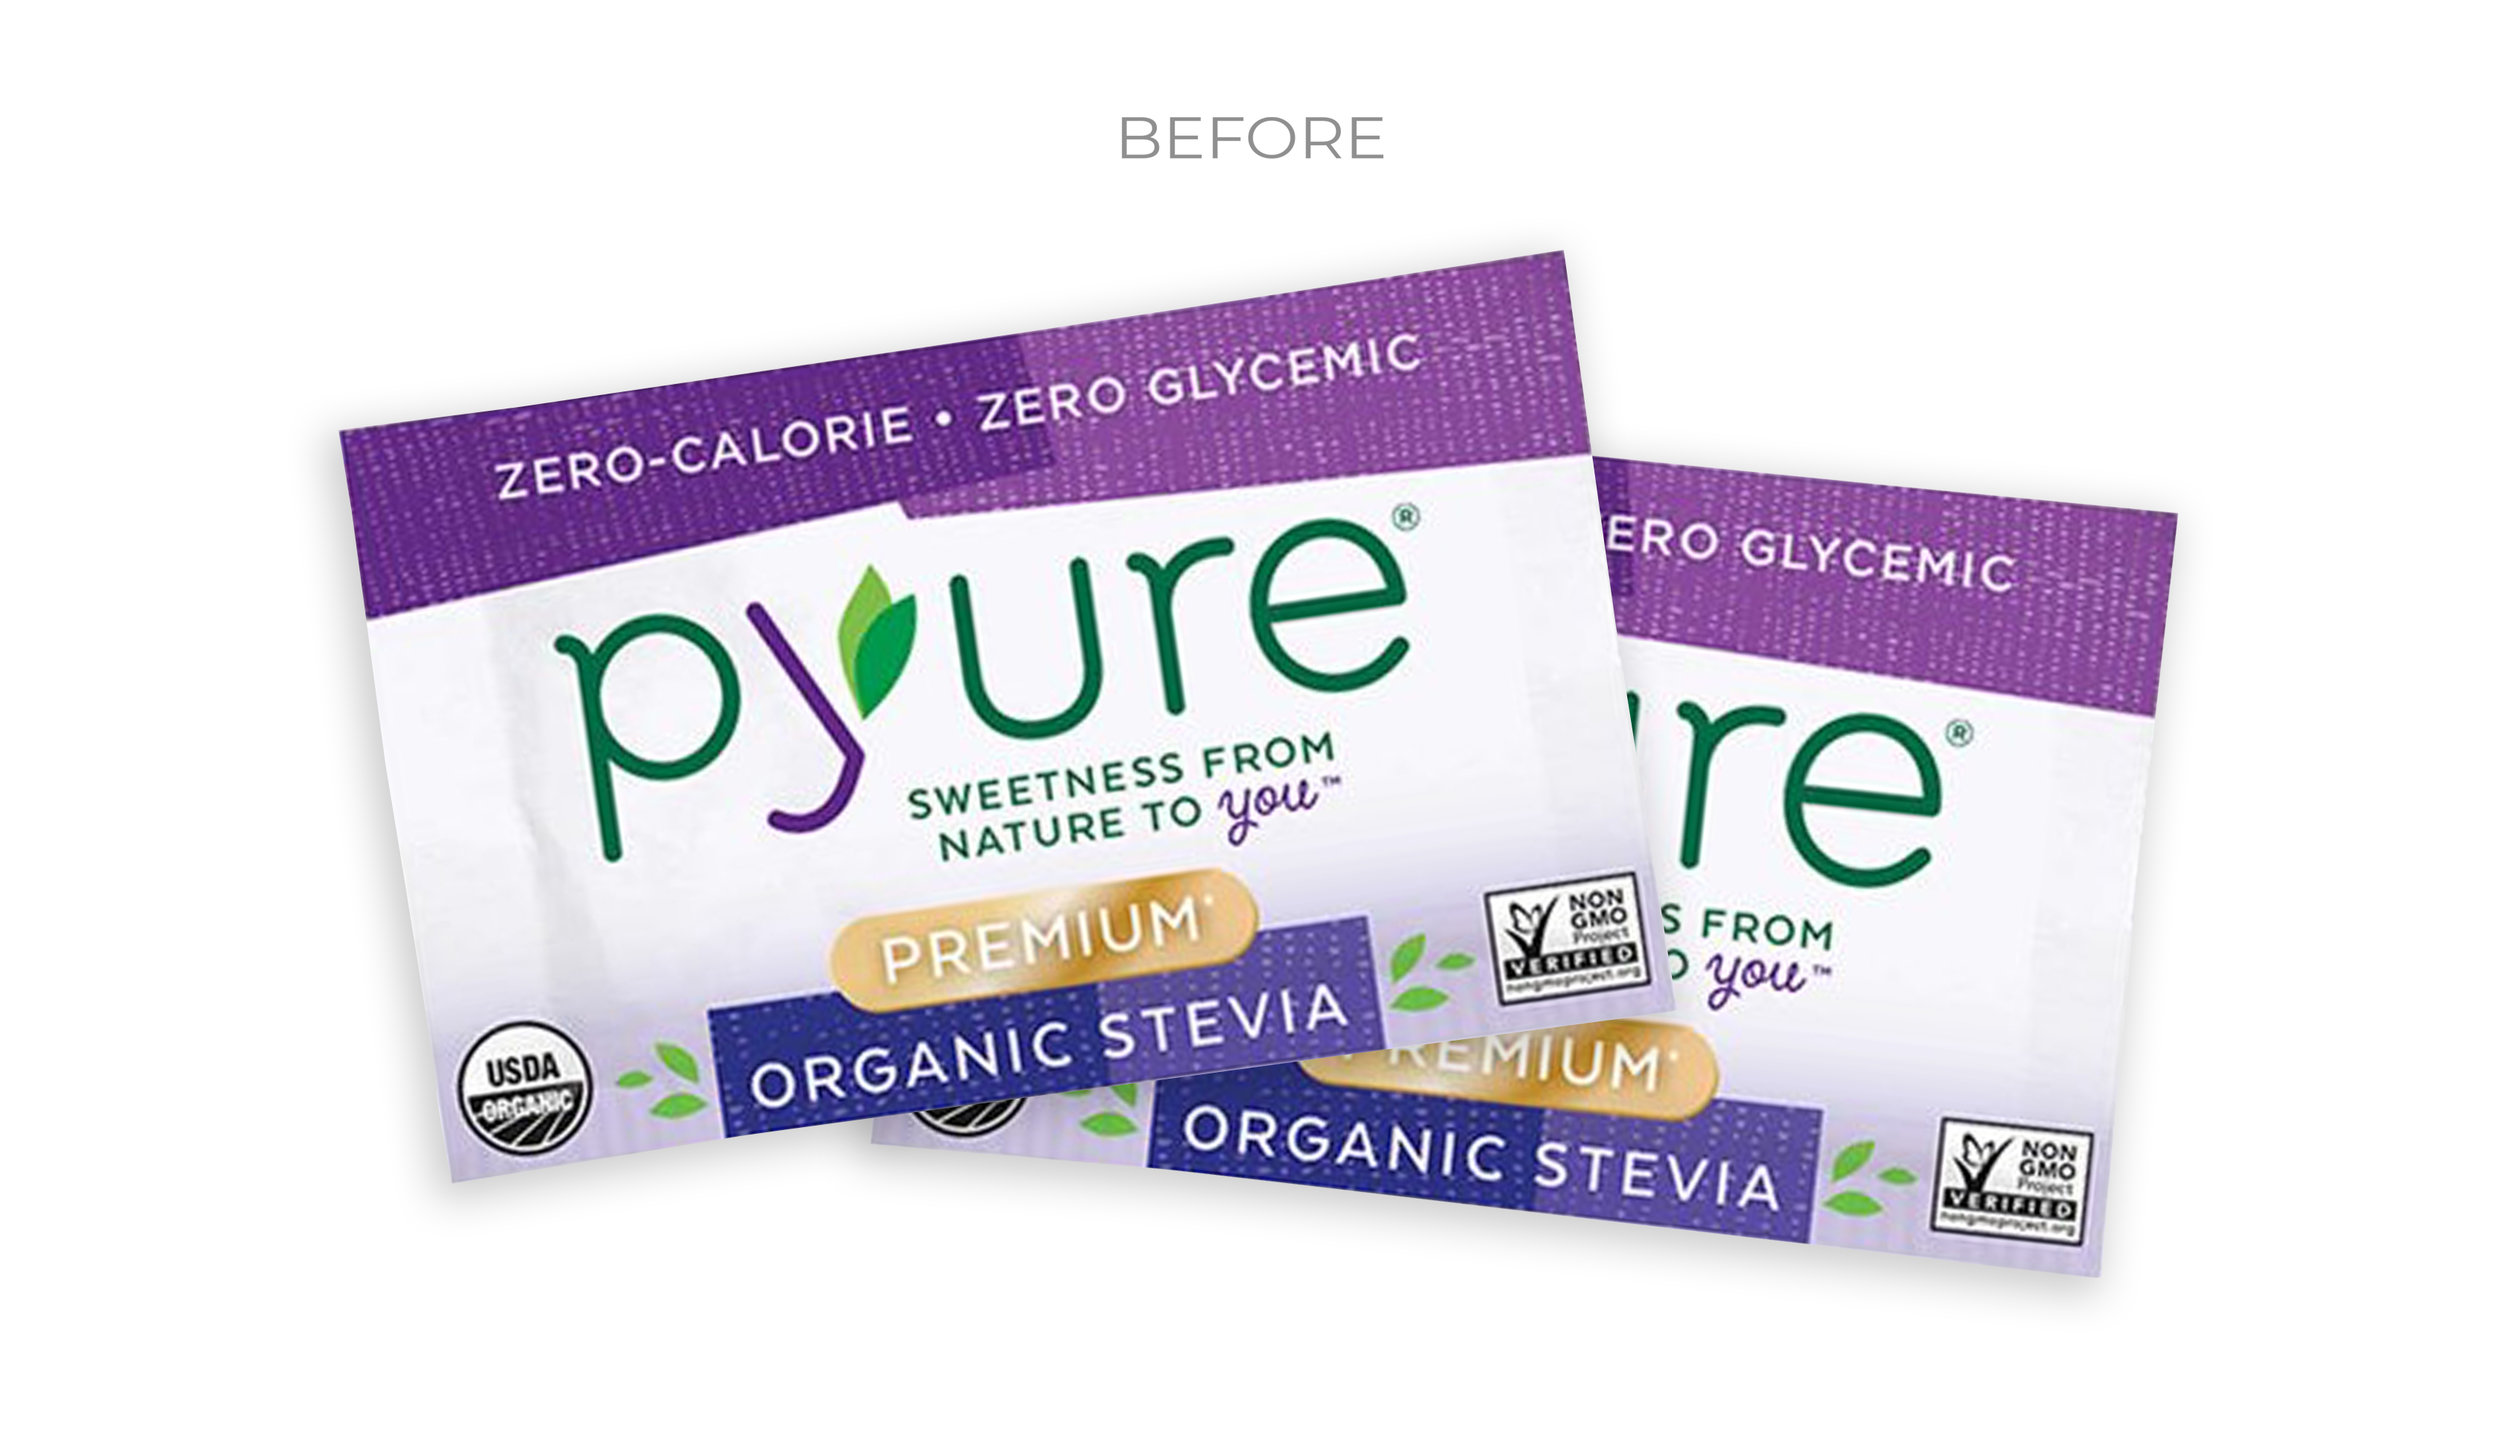 pyure packet compare.jpg